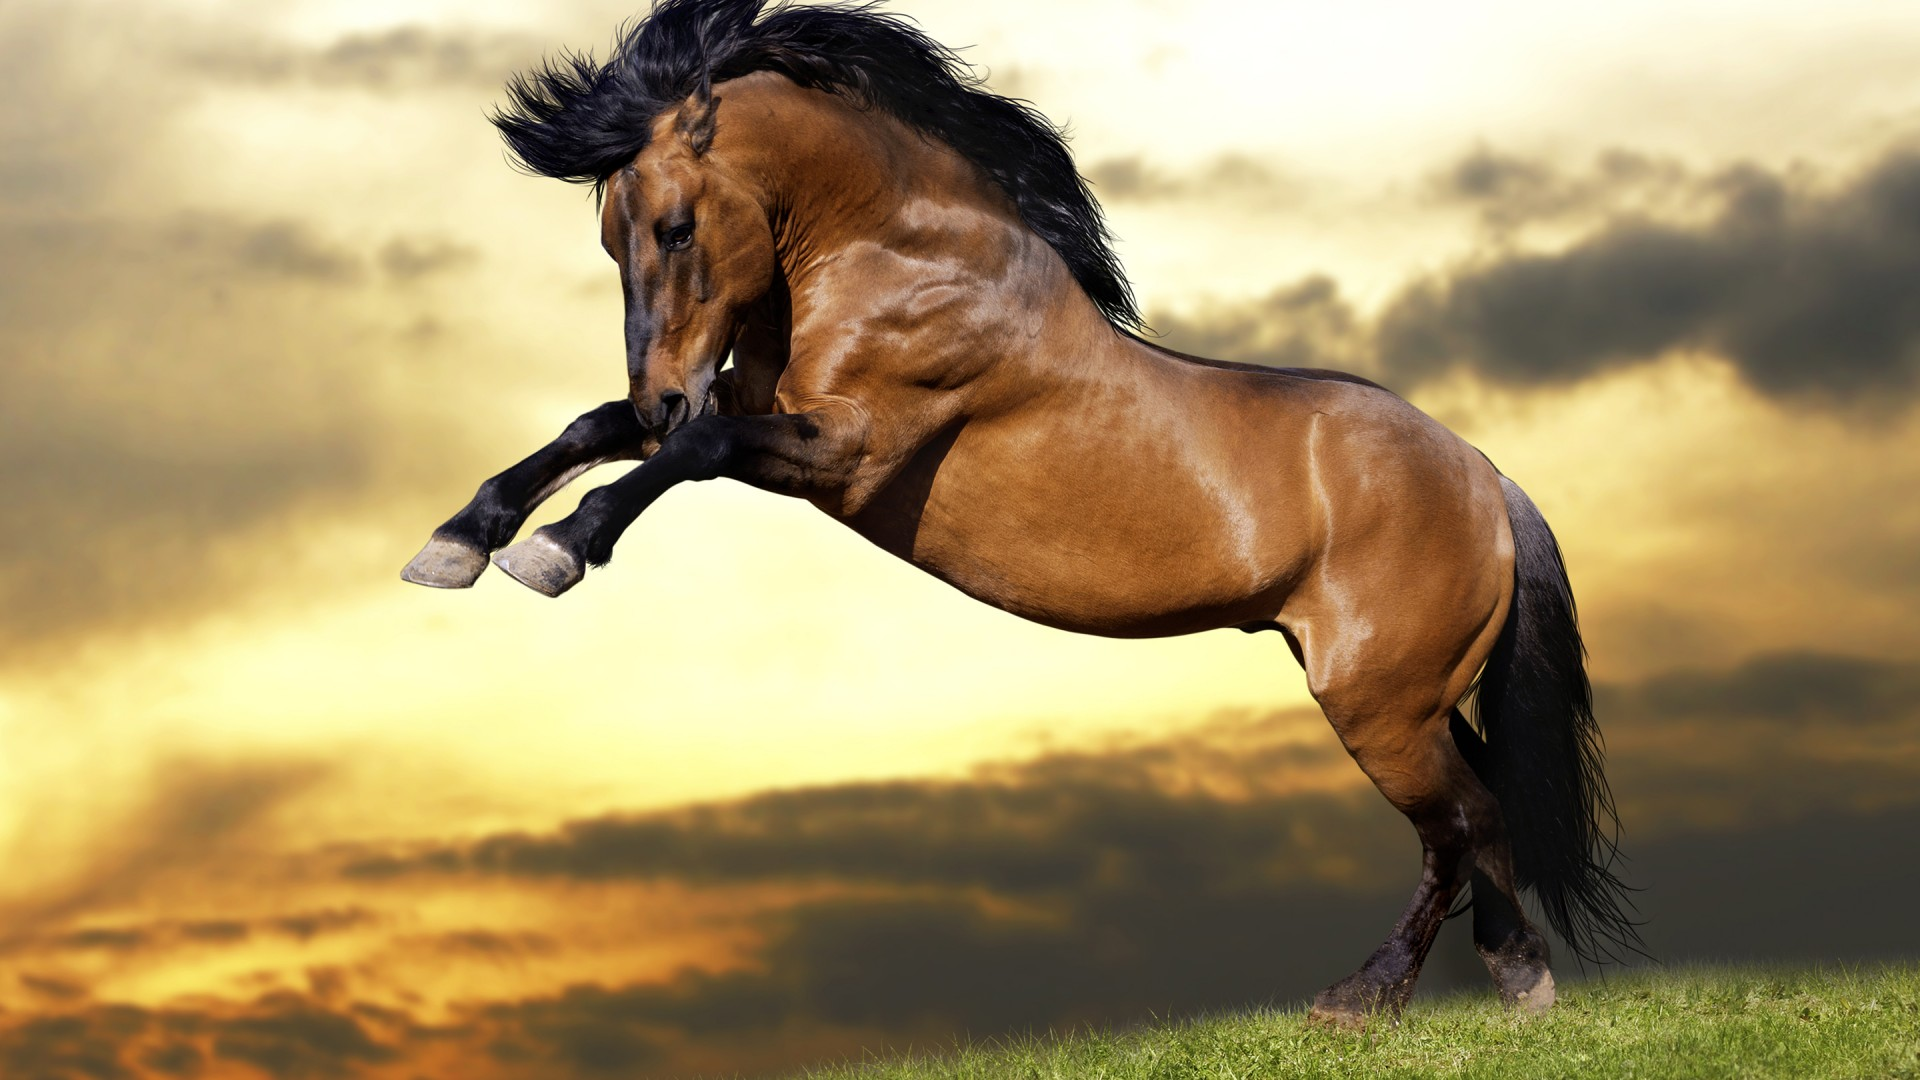 Jumping horse Wallpaper 1080p